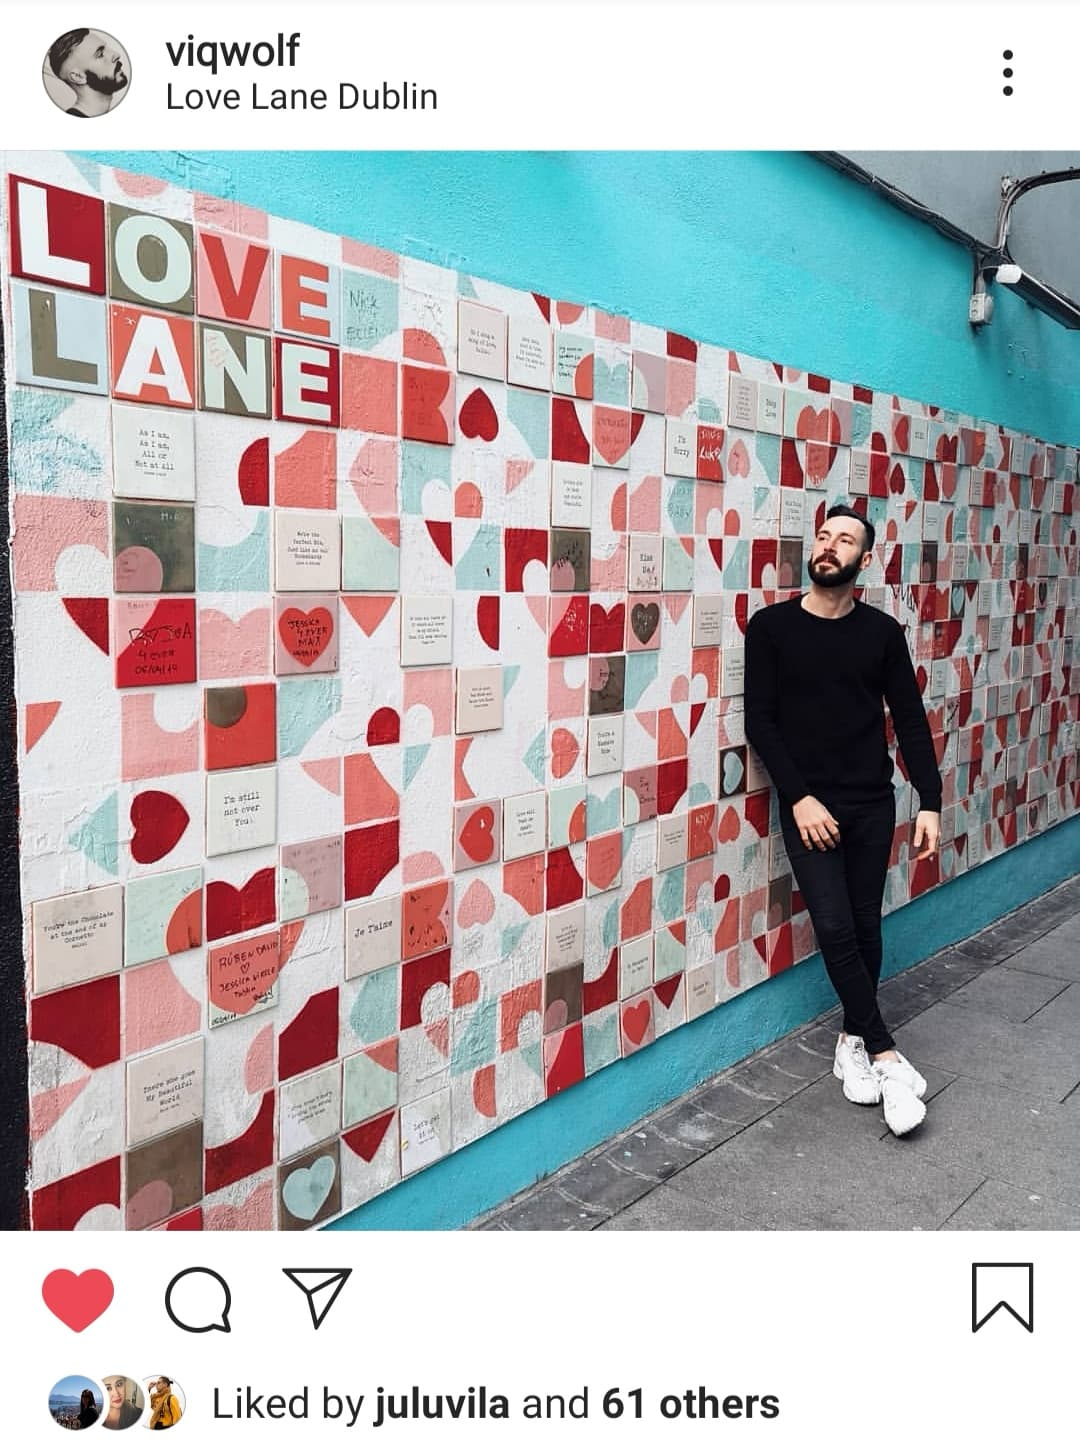 The Love Lane is a beautiful street art mural.